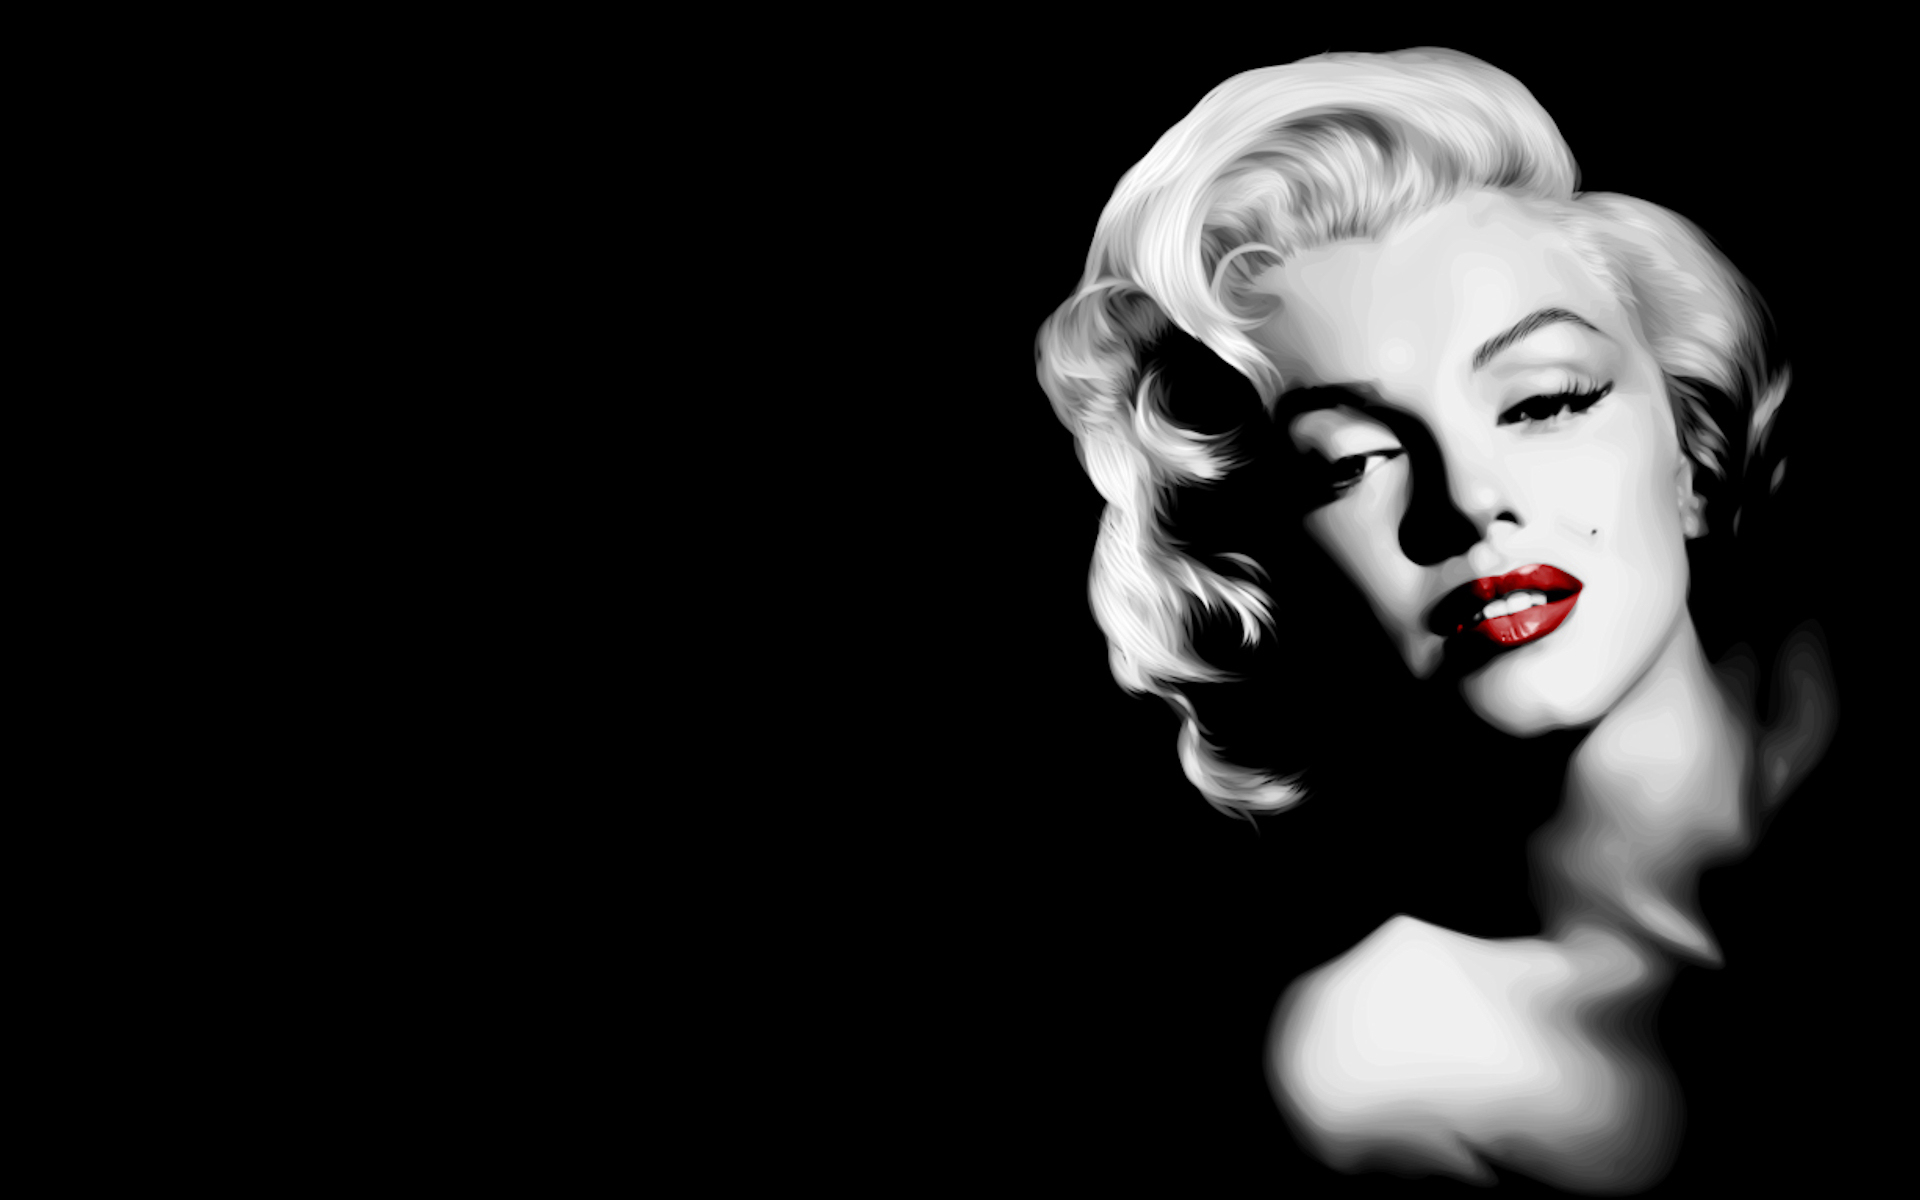 The Estate of Marilyn Monroe, LLC